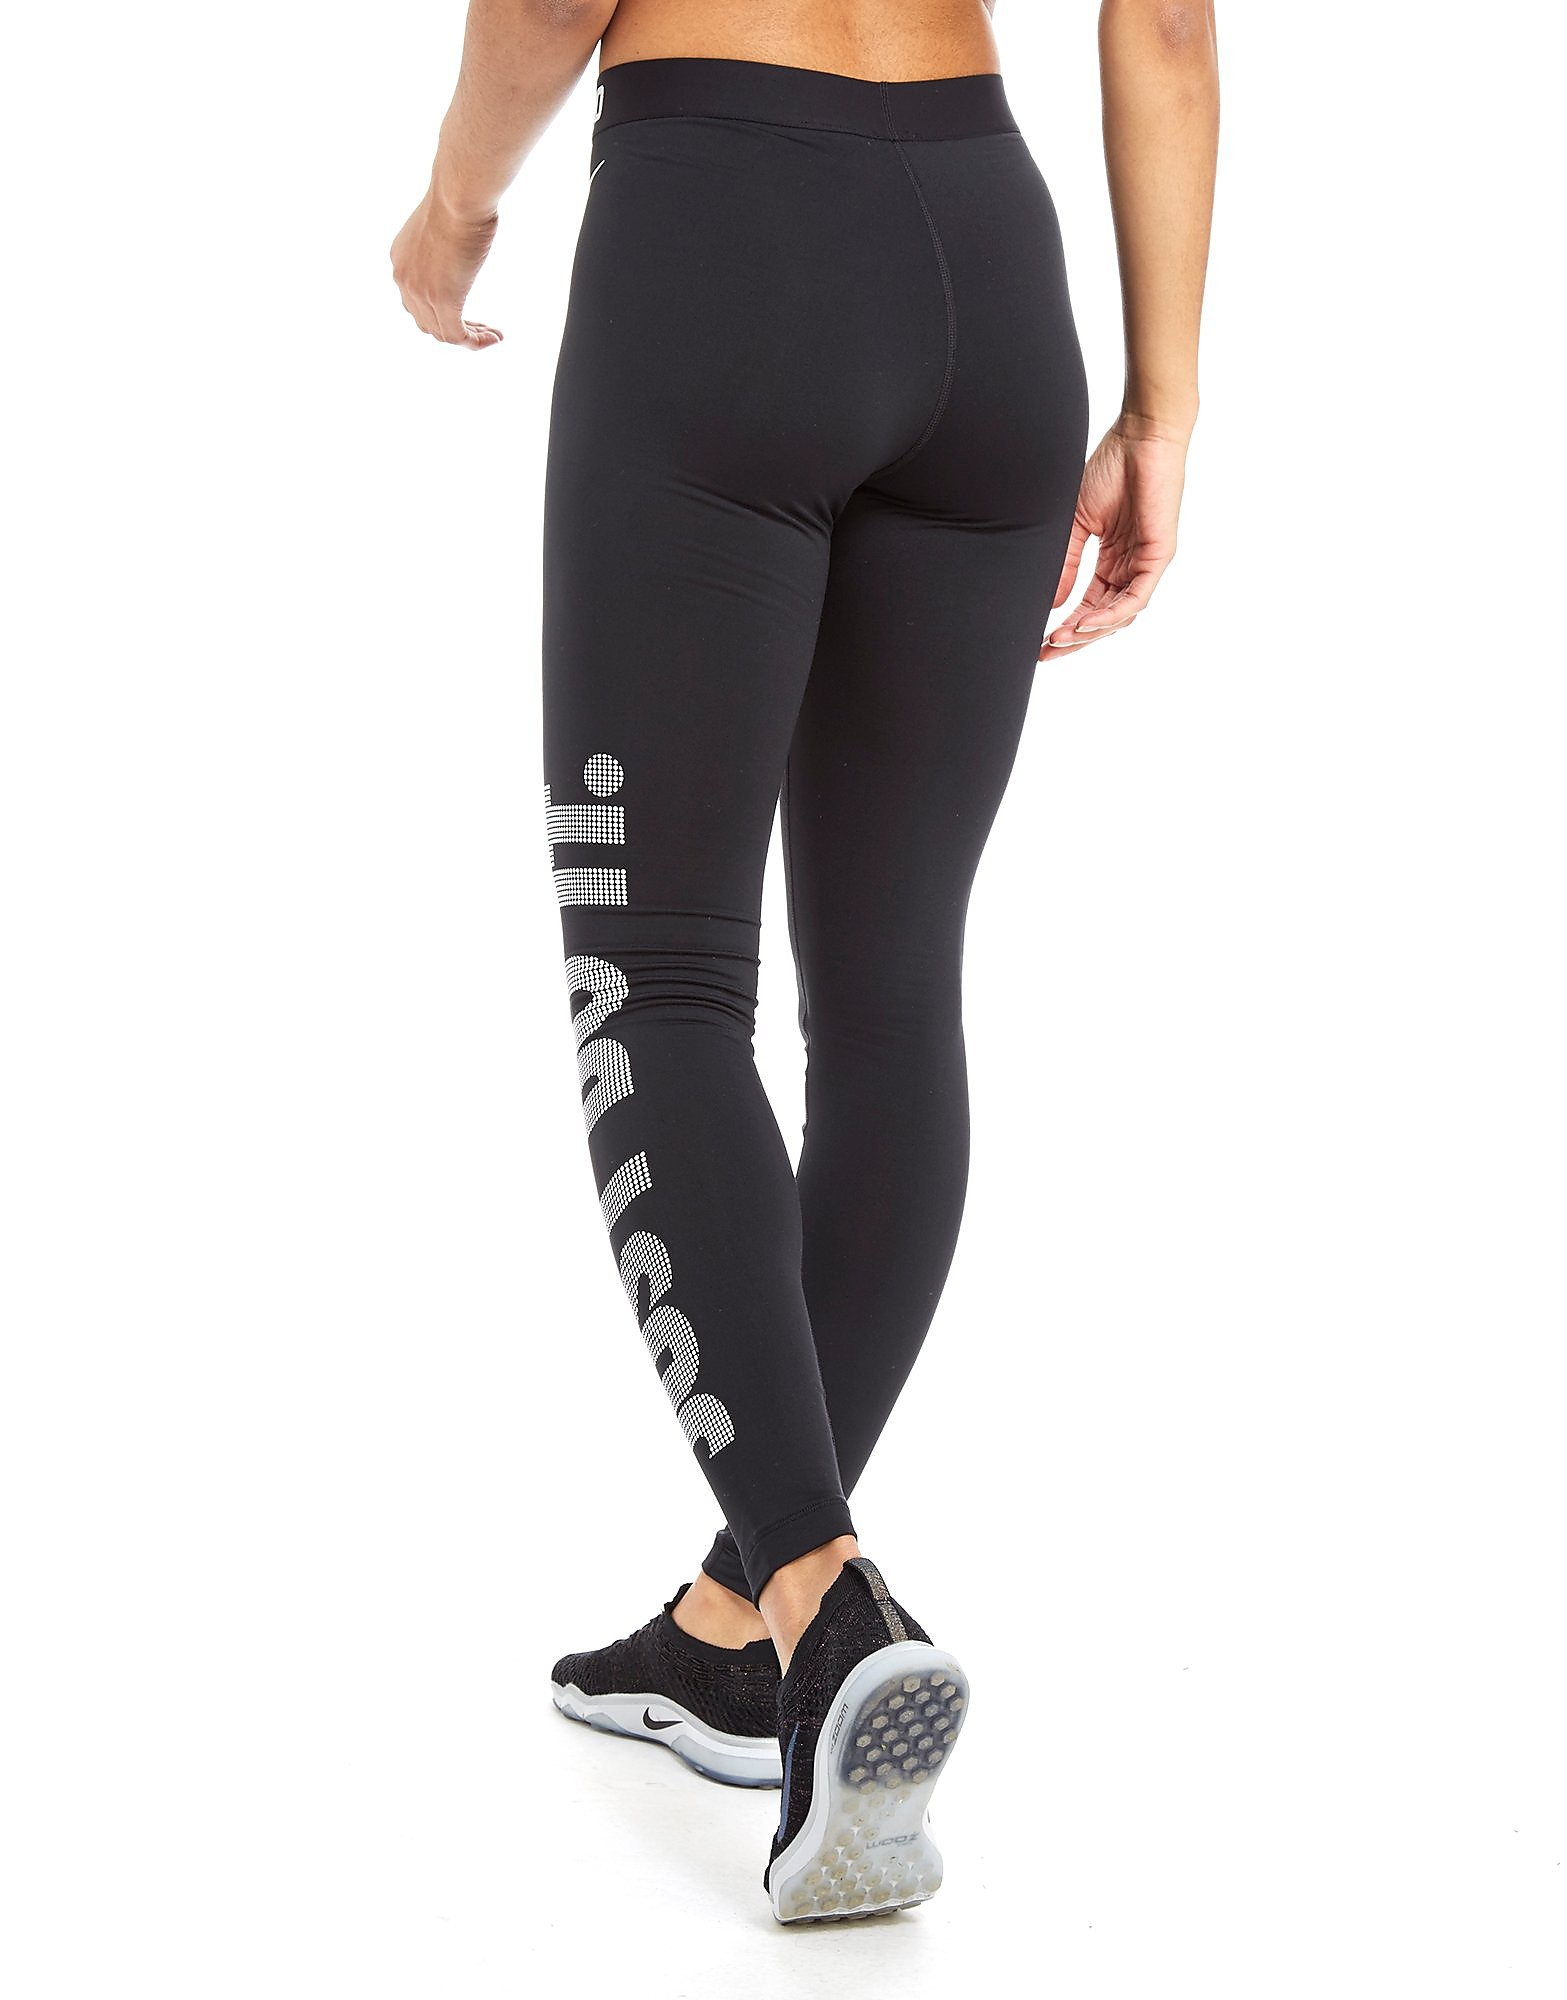 Nike Pro Just Do It Training Tights